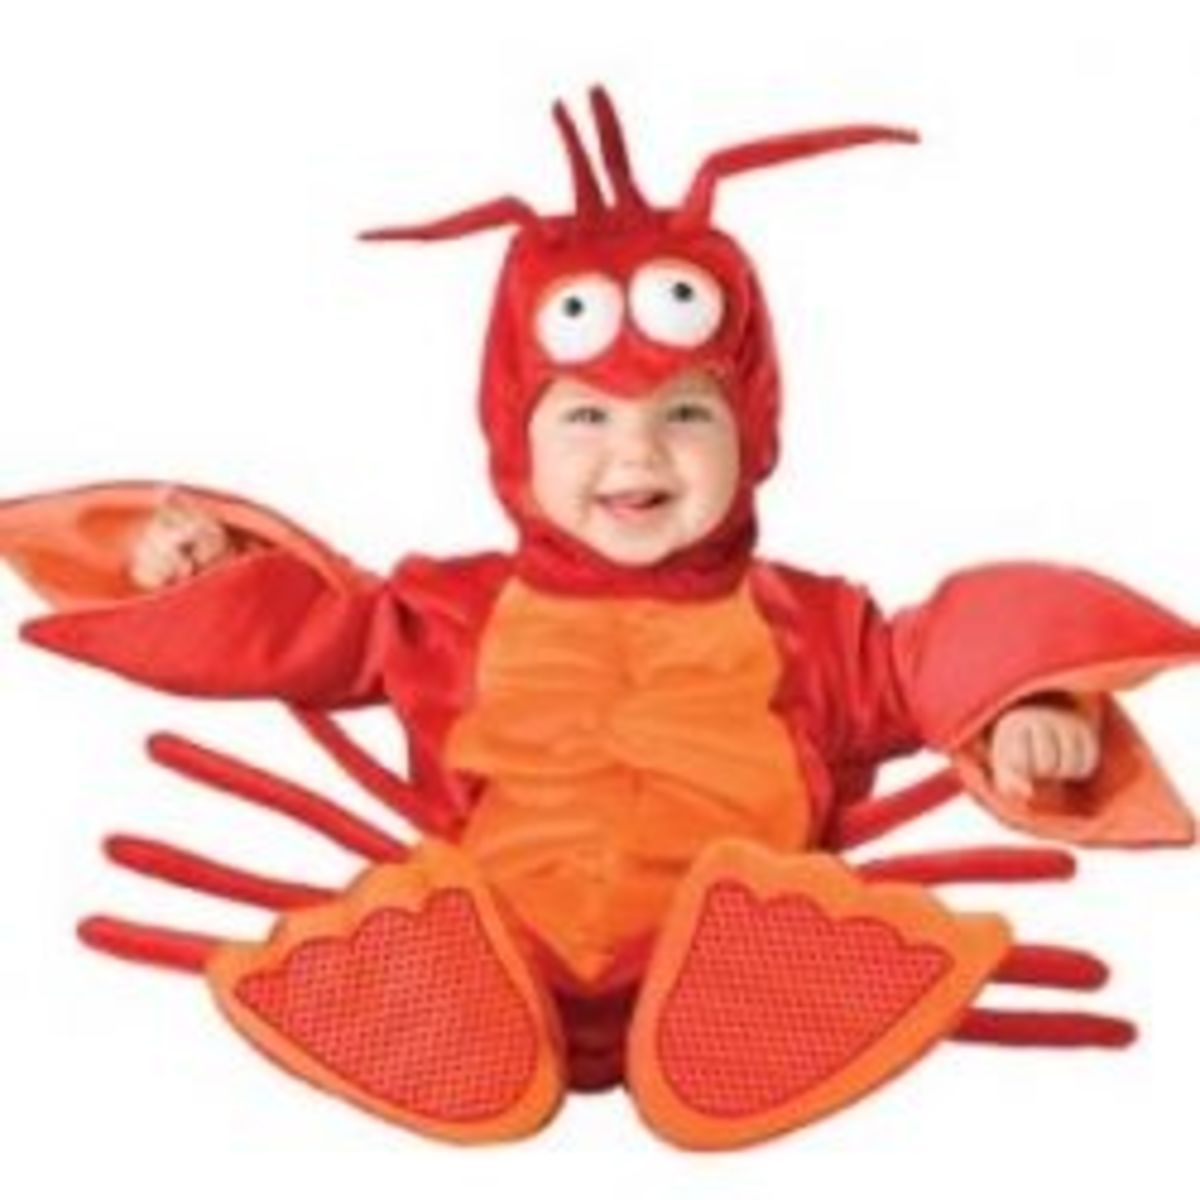 Lobster & Crab Baby Costumes